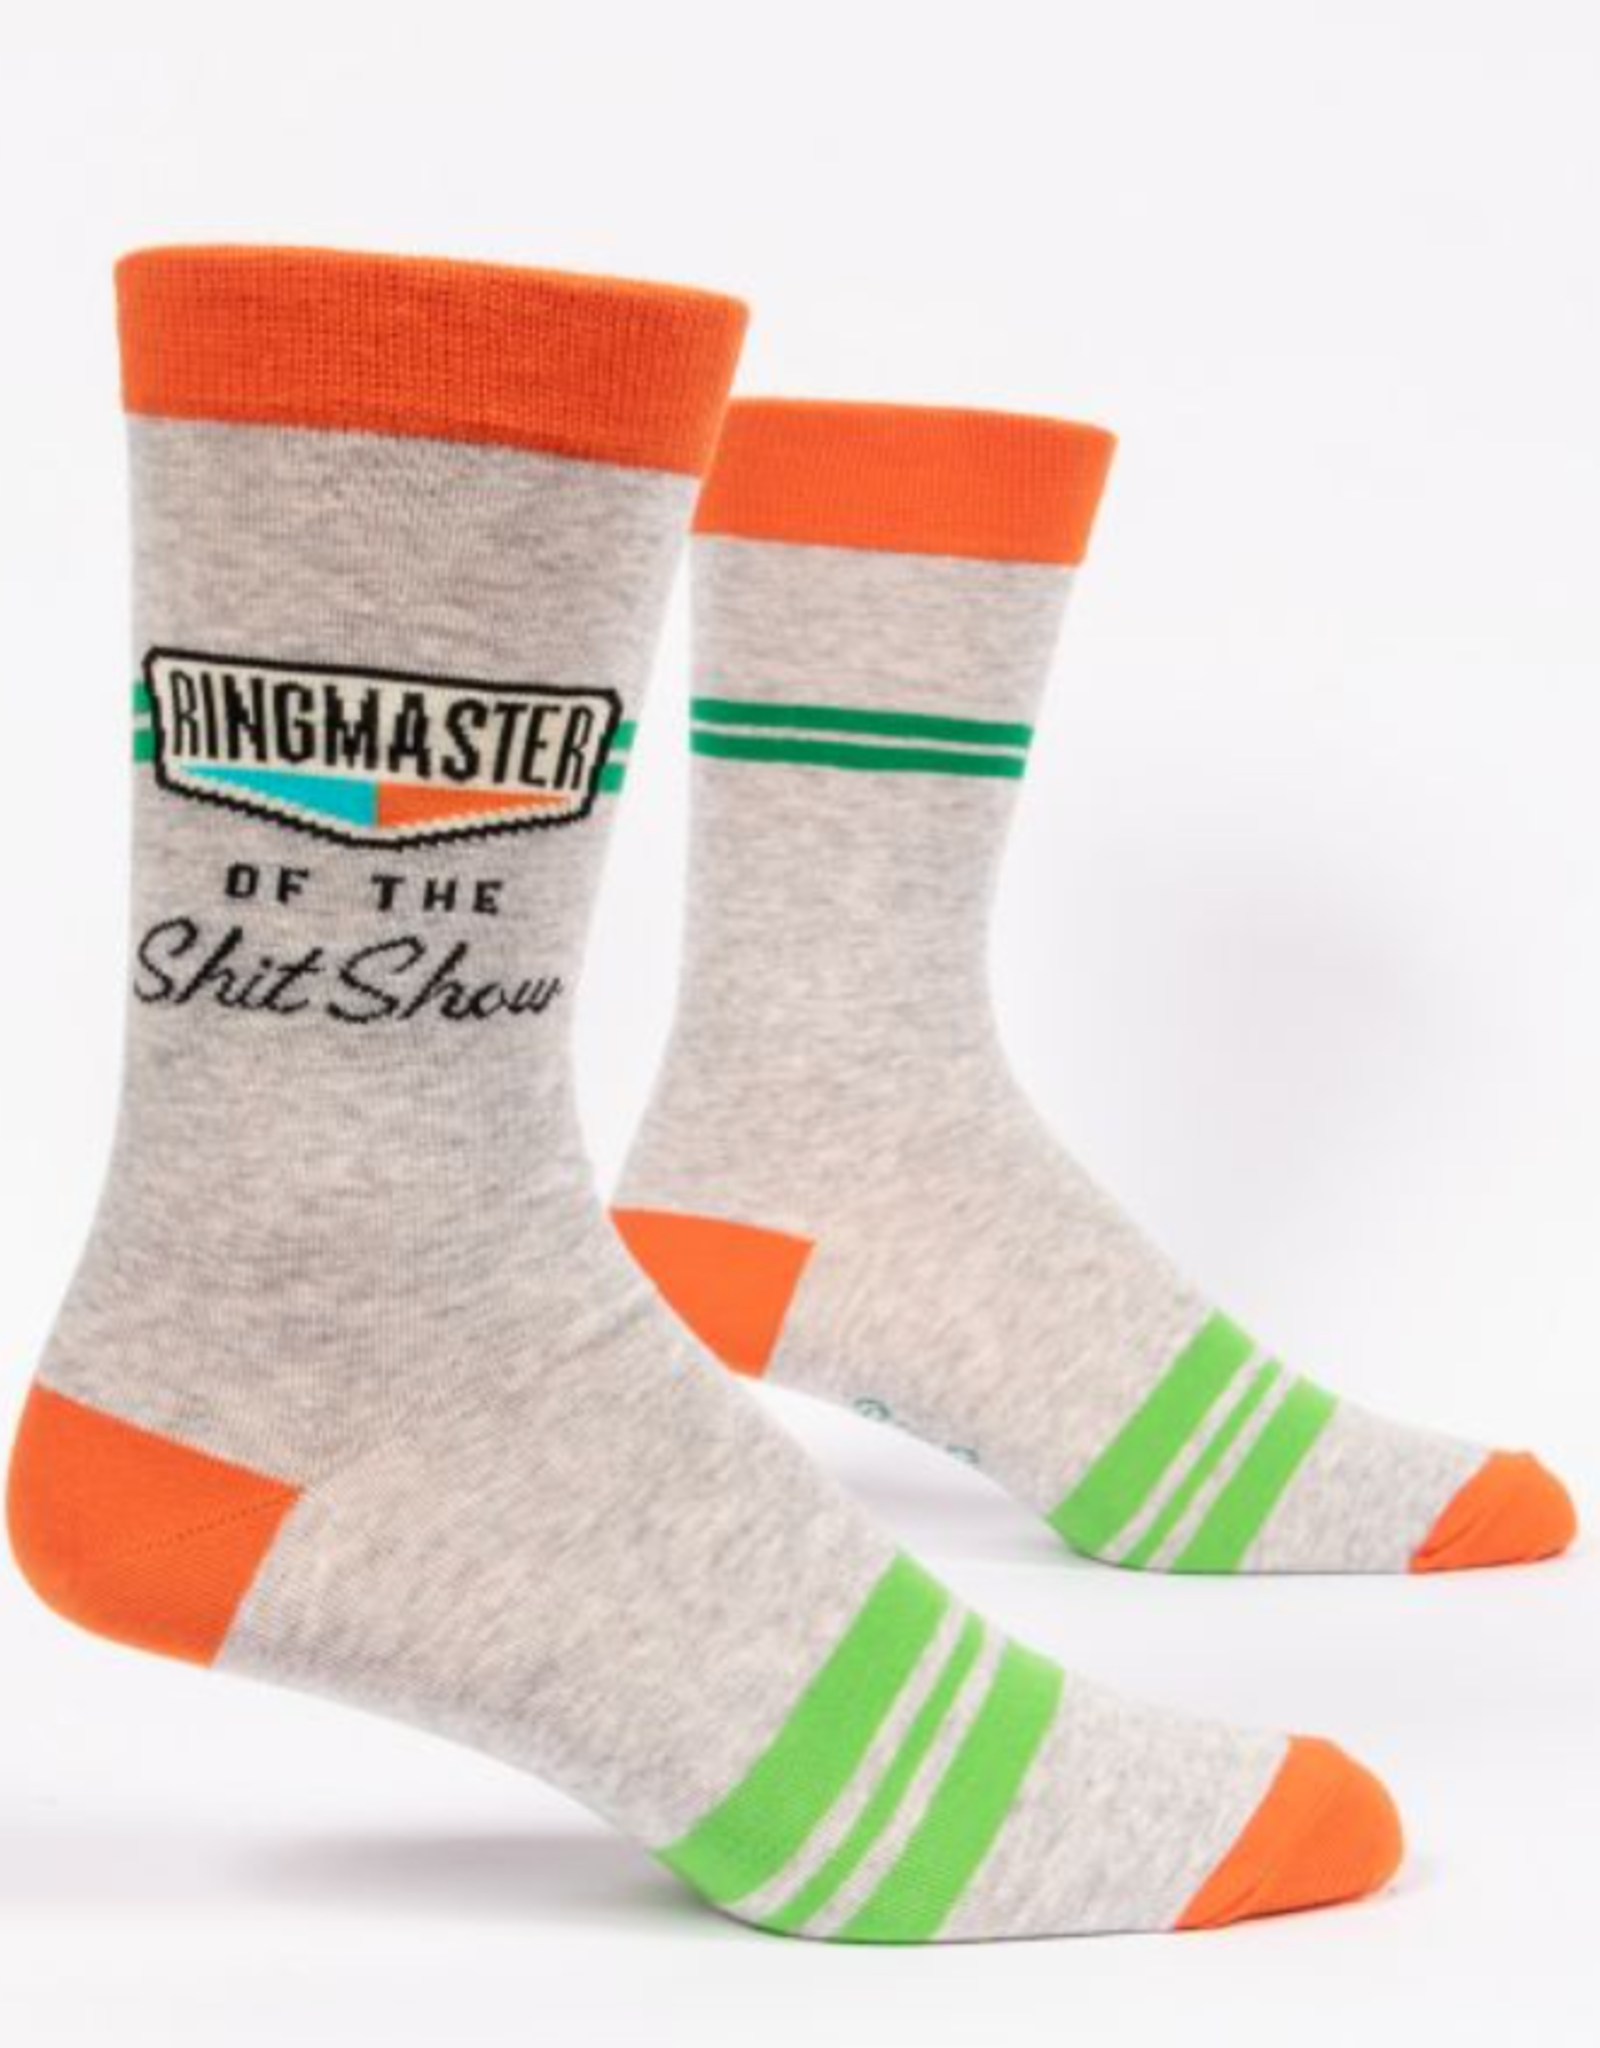 Blue Q Men's Socks - Ringmaster Shit Show